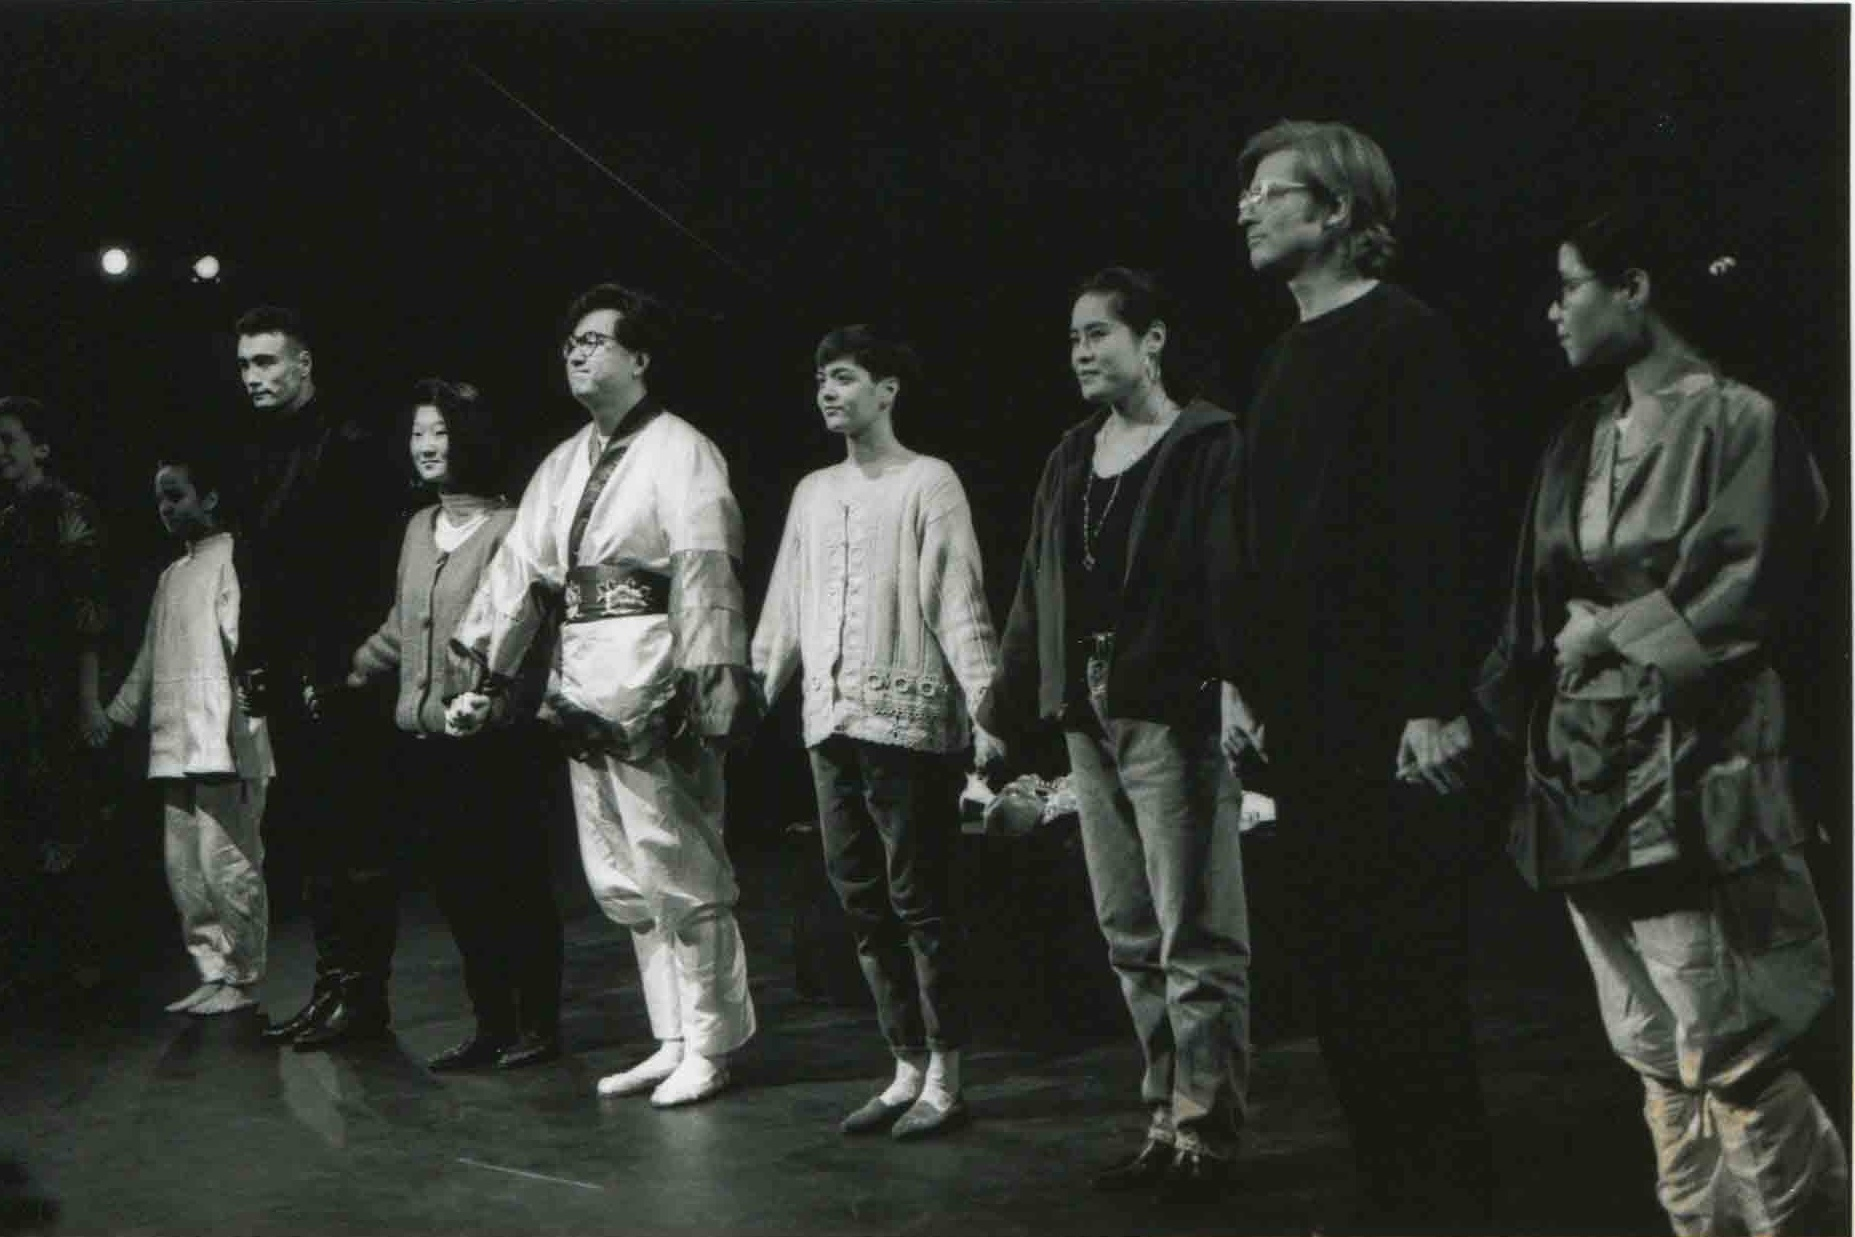 HISTORY OF MU - Discover the rich history of Theater Mu and Asian American theater.